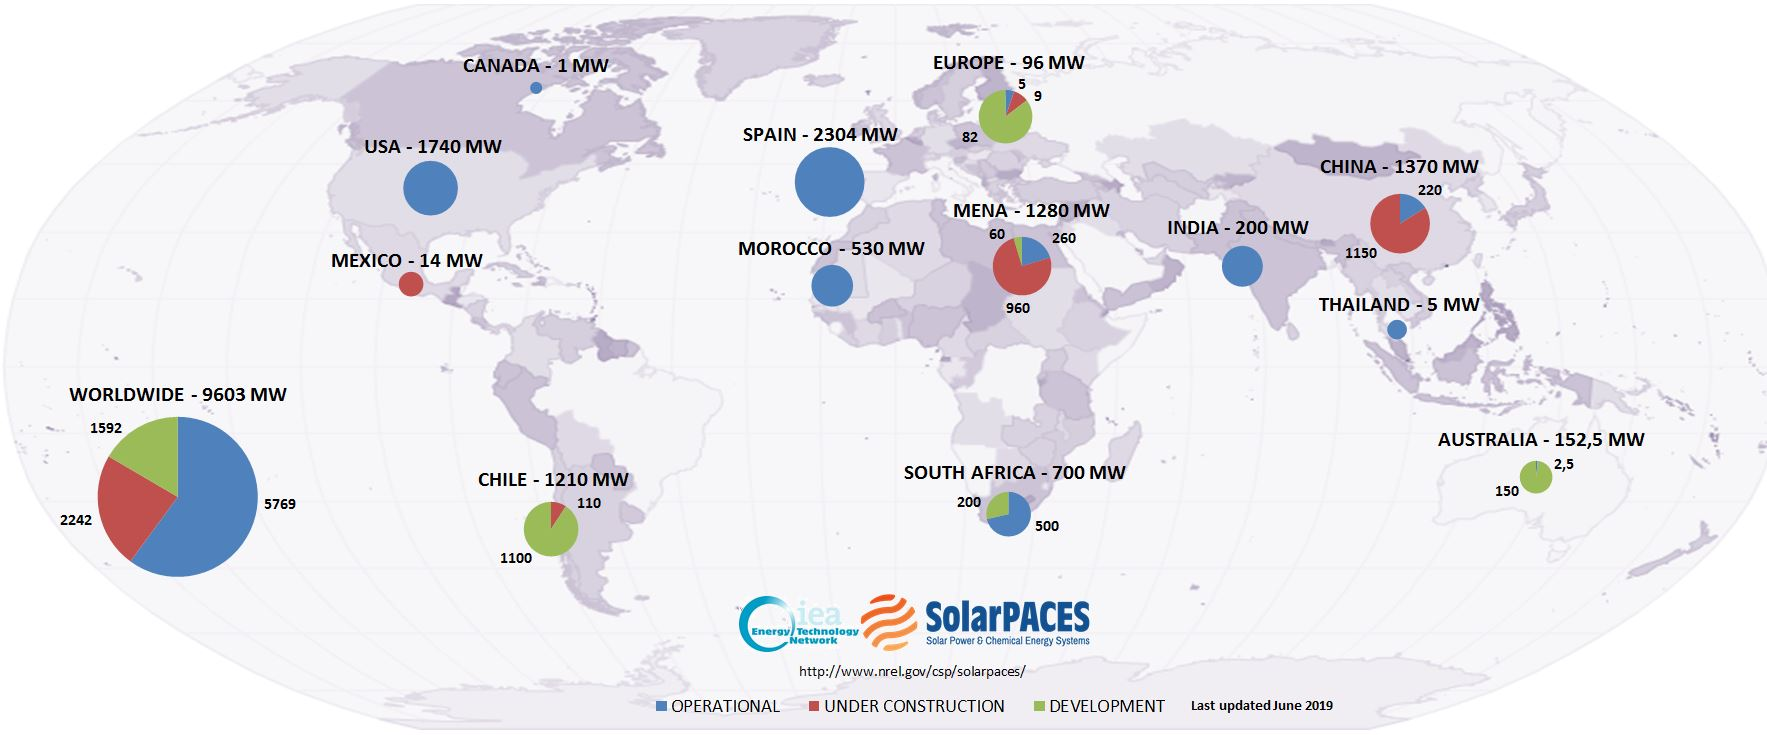 CSP Projects Around the World - SolarPACES